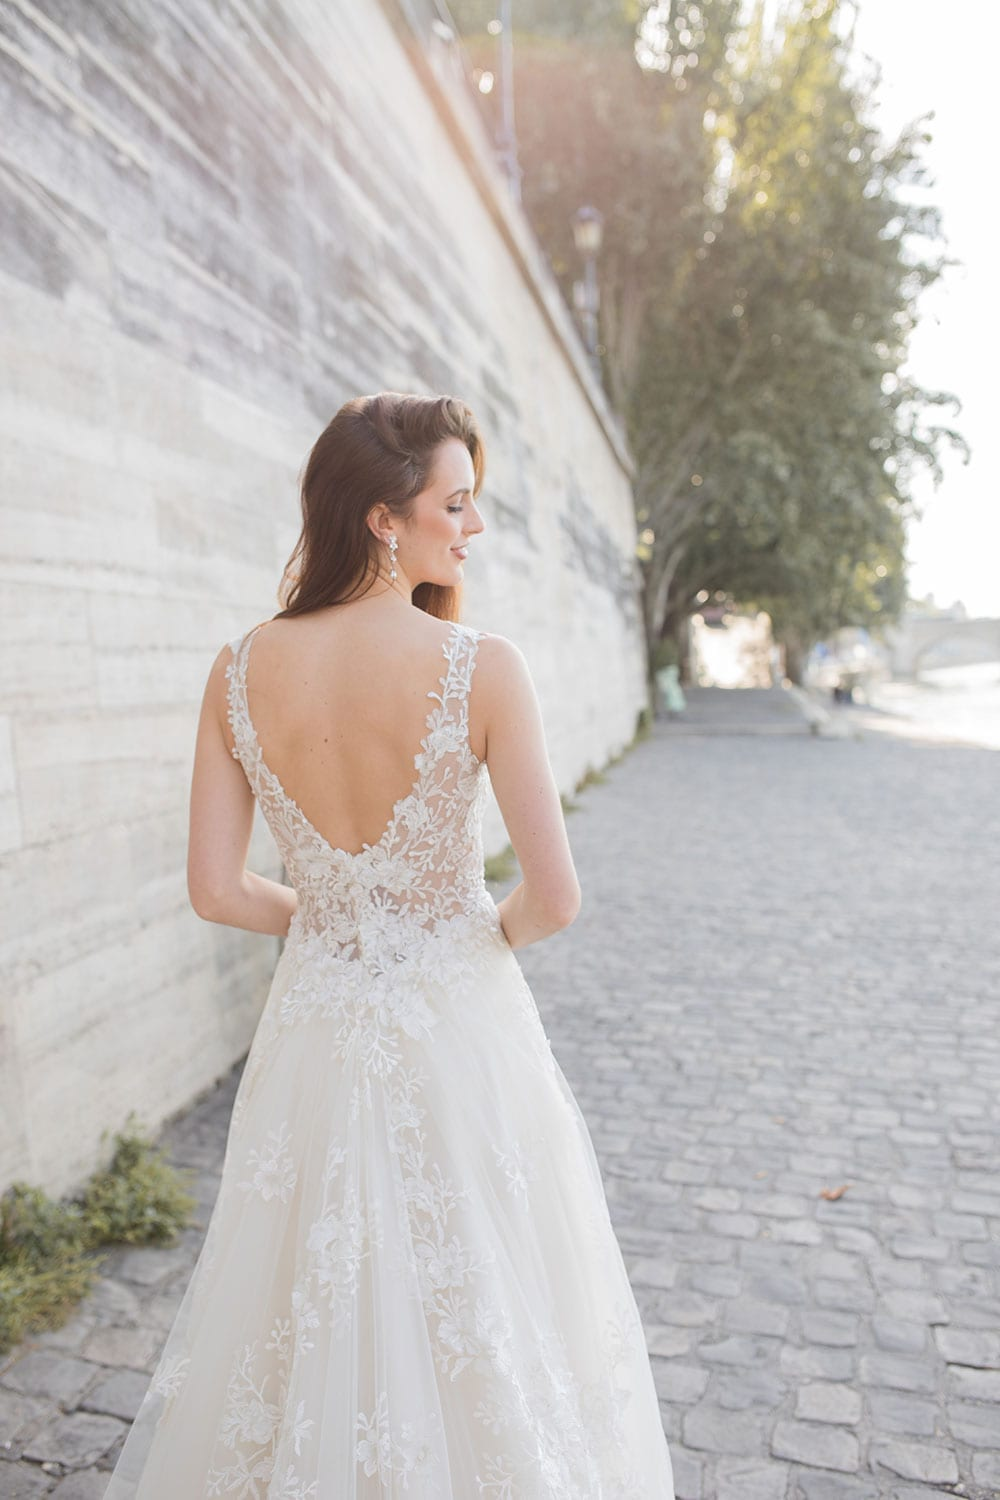 Model wearing Vinka Design Delta Wedding Dress, a Sheer Embroidered Lace Wedding Gown facing away showing back on path next to the Seine in Paris